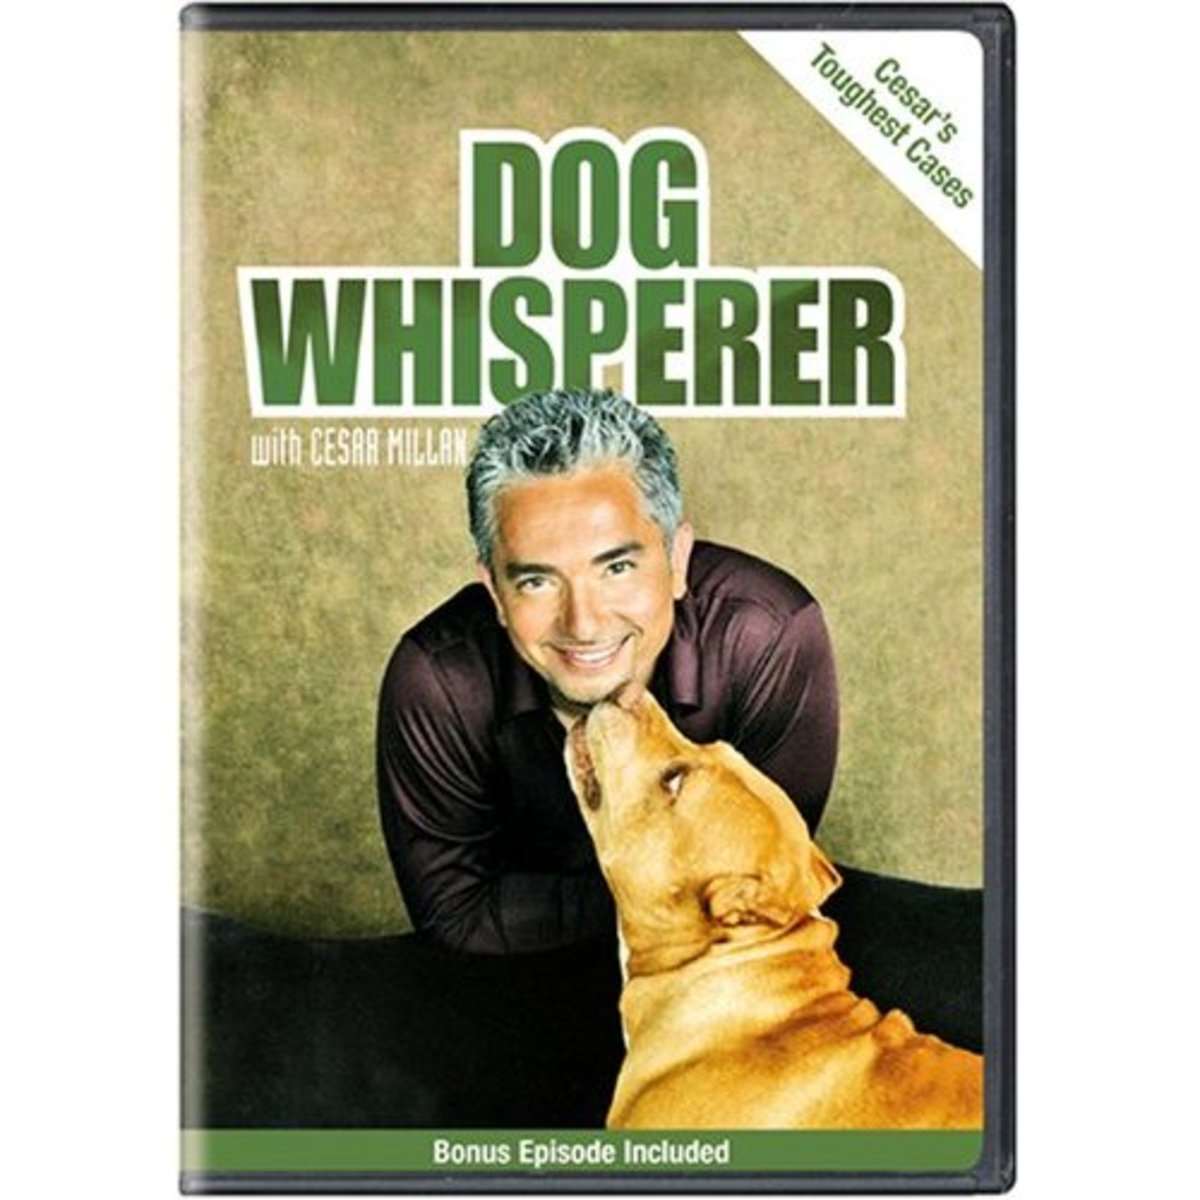 Dog Whisperer with Cesar Millan: Cesar's Toughest Cases. From Amazon.com